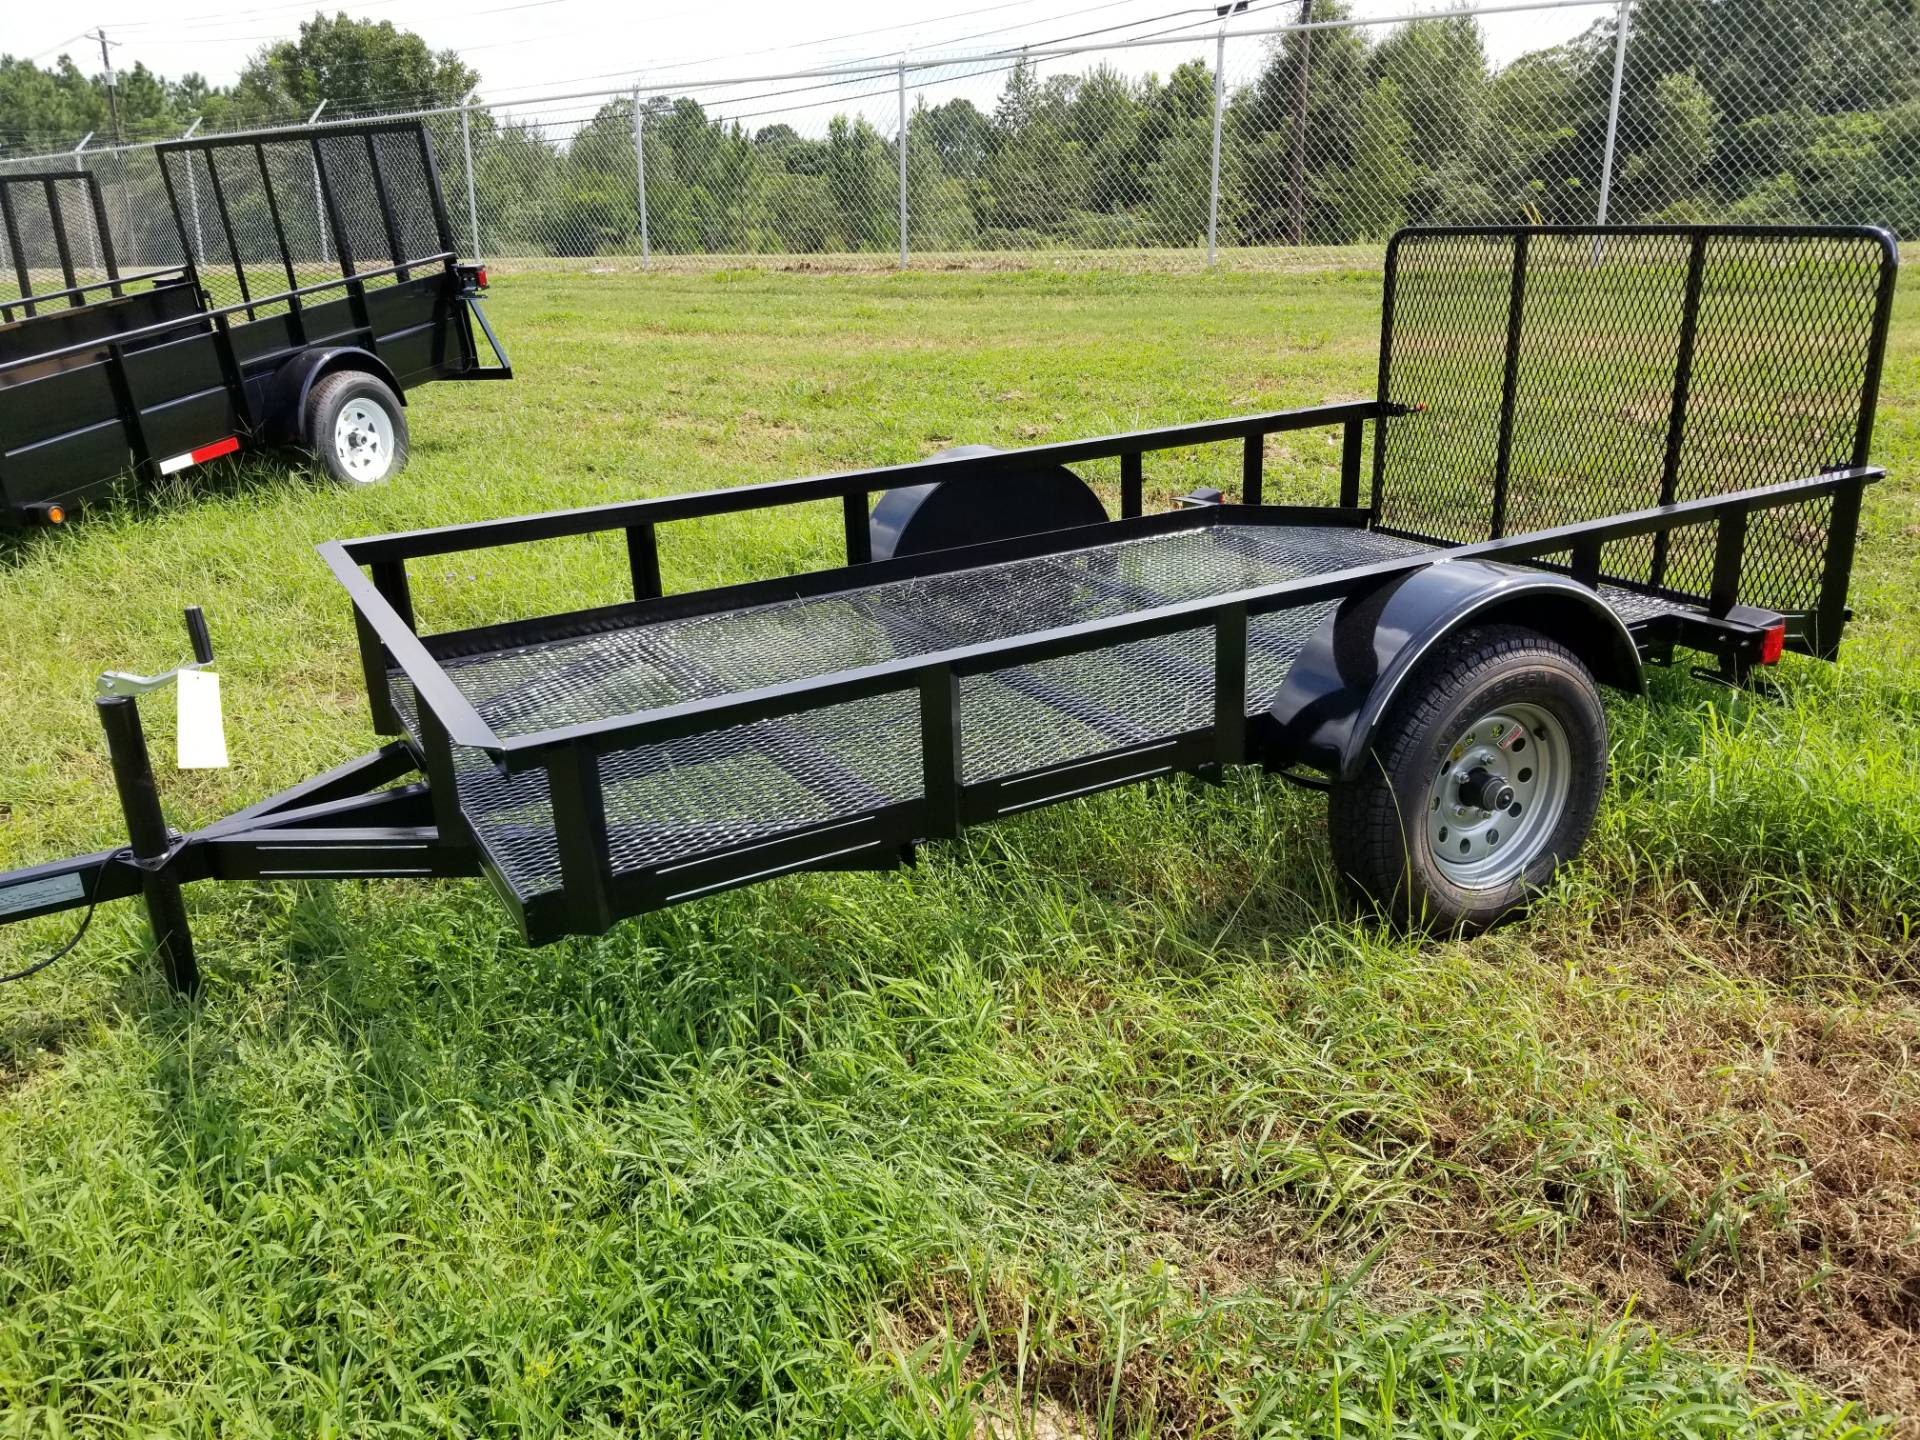 2018 Brewer Implement 2018 Brewer Implement 5x10 Mesh Dove Tail Landscape Utility Trailer in Tifton, Georgia